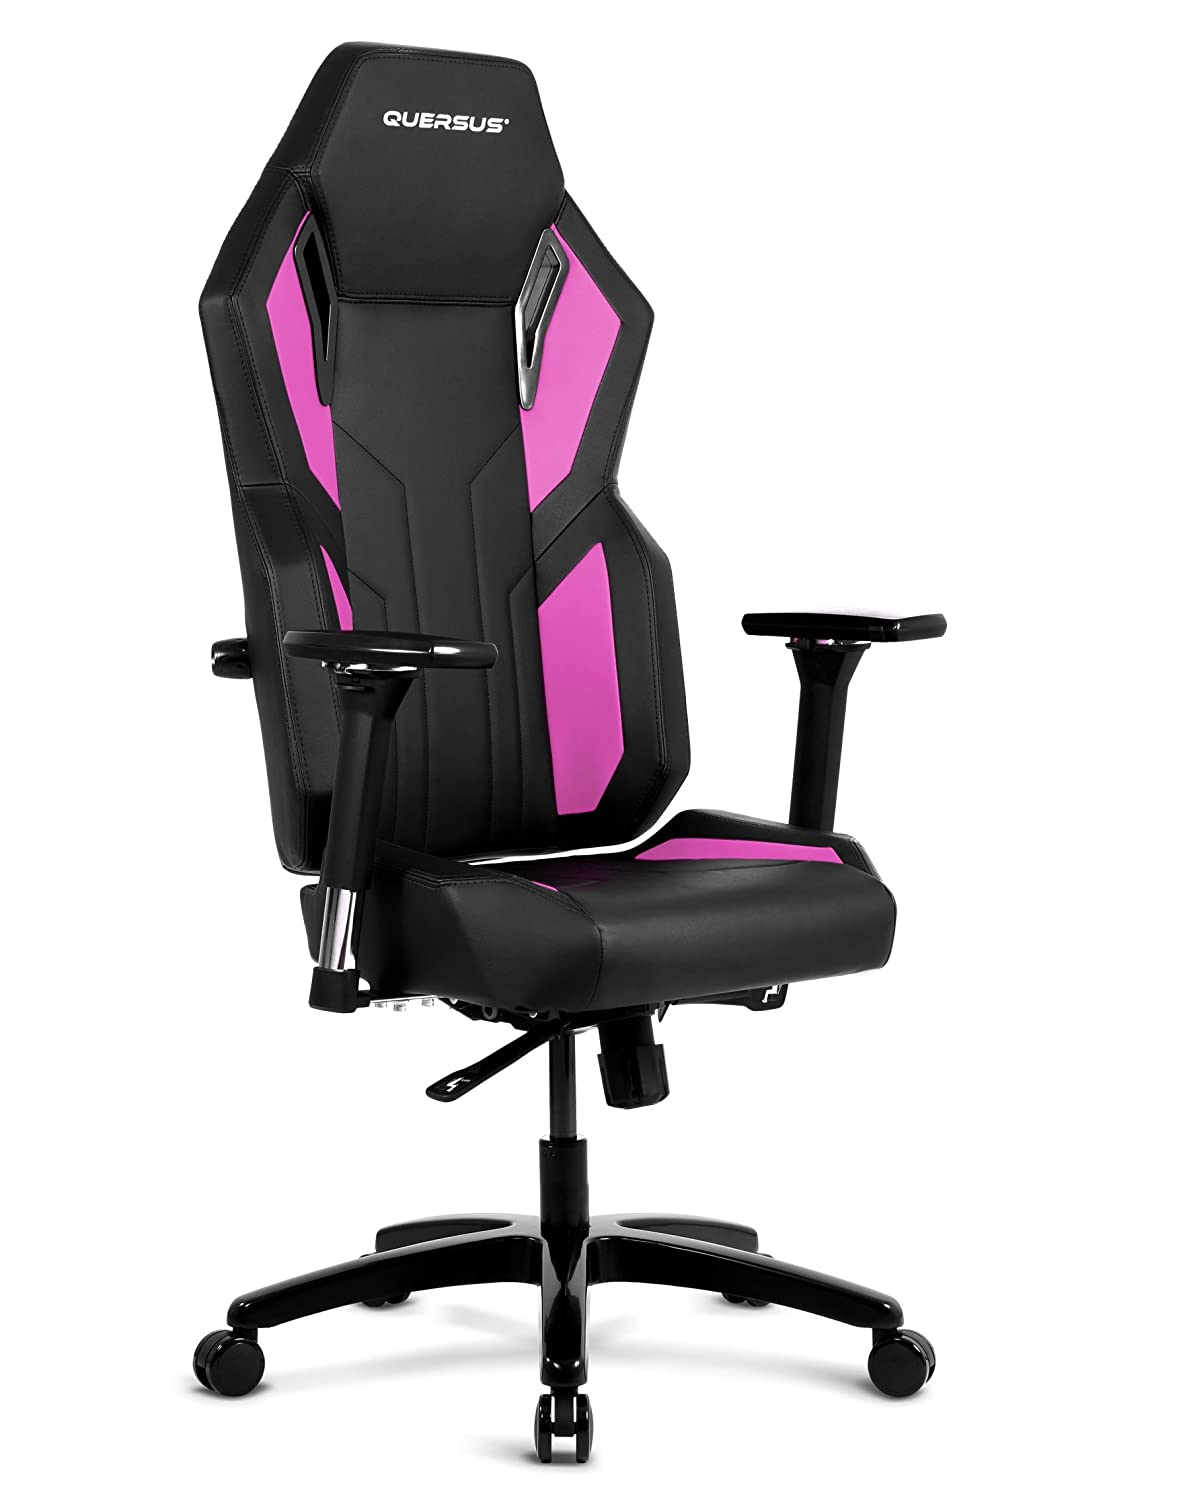 Outstanding Quersus Gaming Chair Vaos 502 Executive Office Chair Pink Machost Co Dining Chair Design Ideas Machostcouk